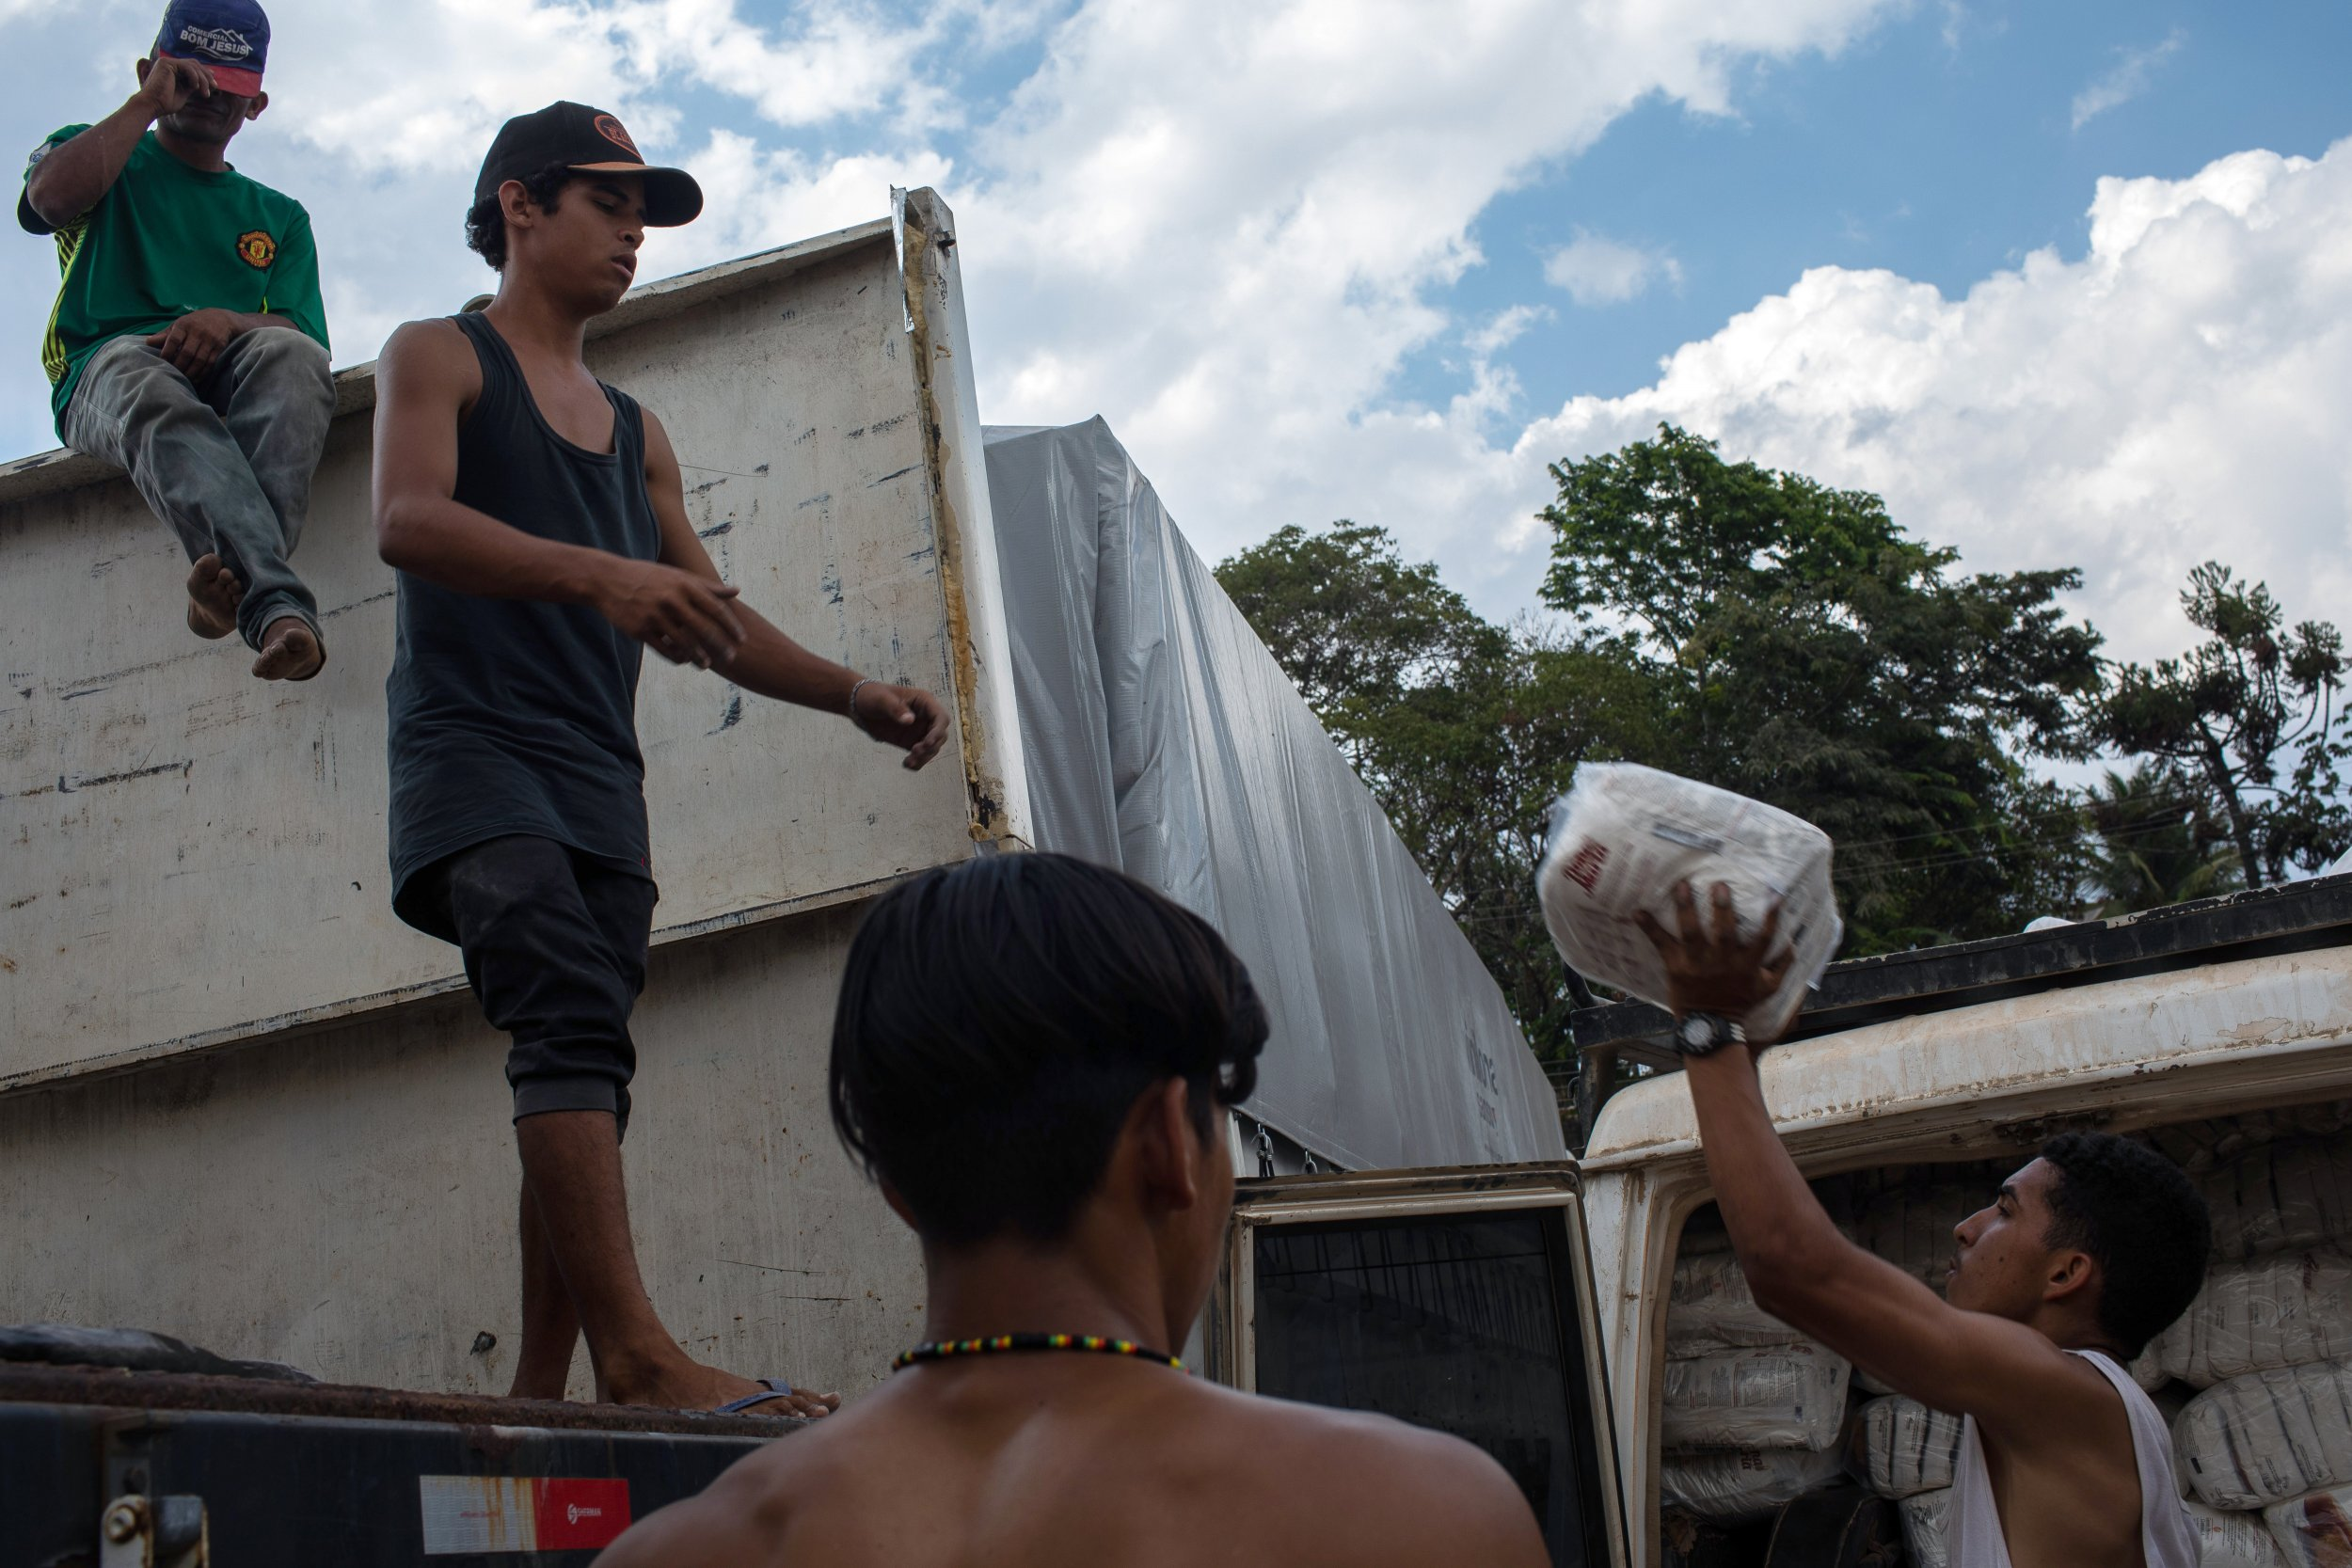 Venezuelans seek refuge in Brazil